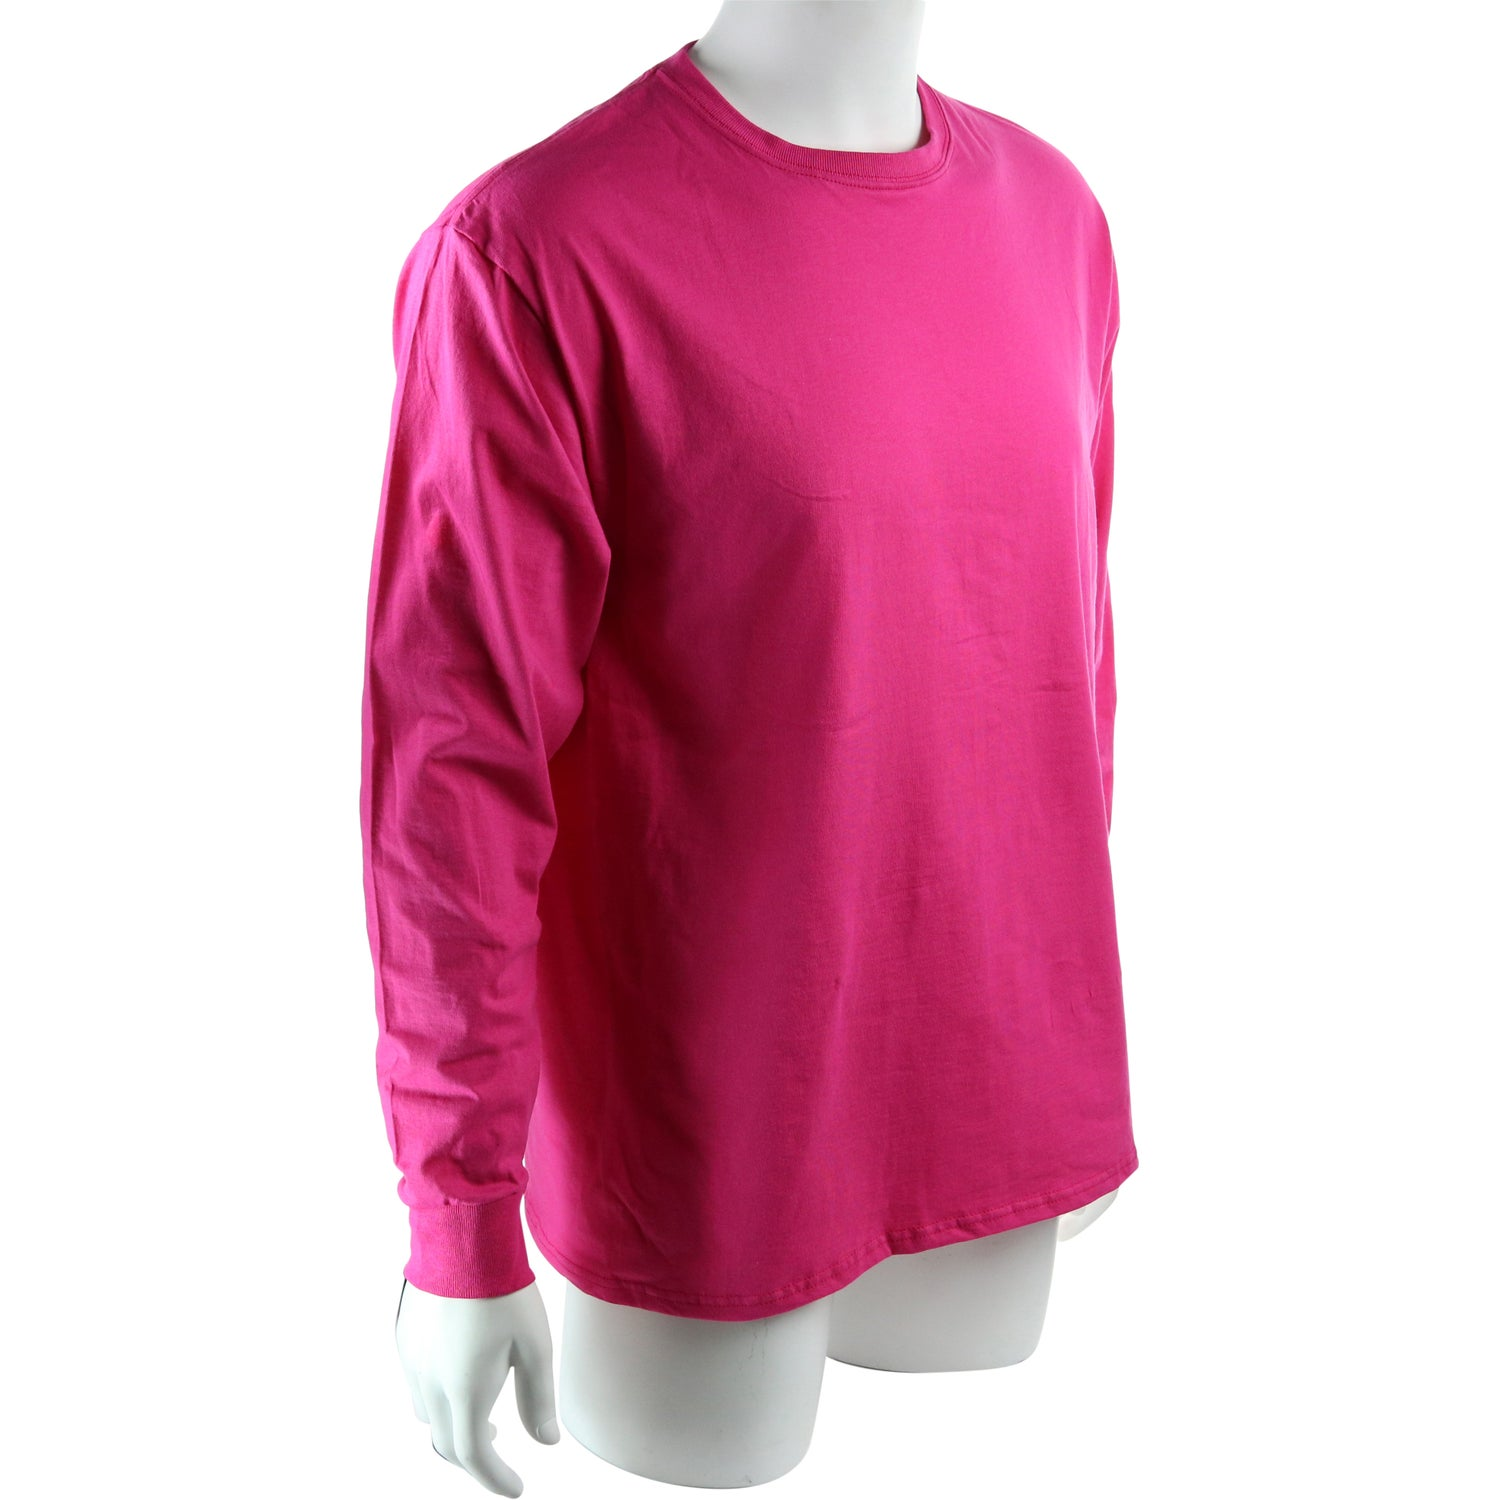 6ecc3ce3e CLICK HERE to Order Colors Fruit of the Loom Long Sleeve Cotton T-Shirts  Printed with Your Logo for $18.80 Ea.